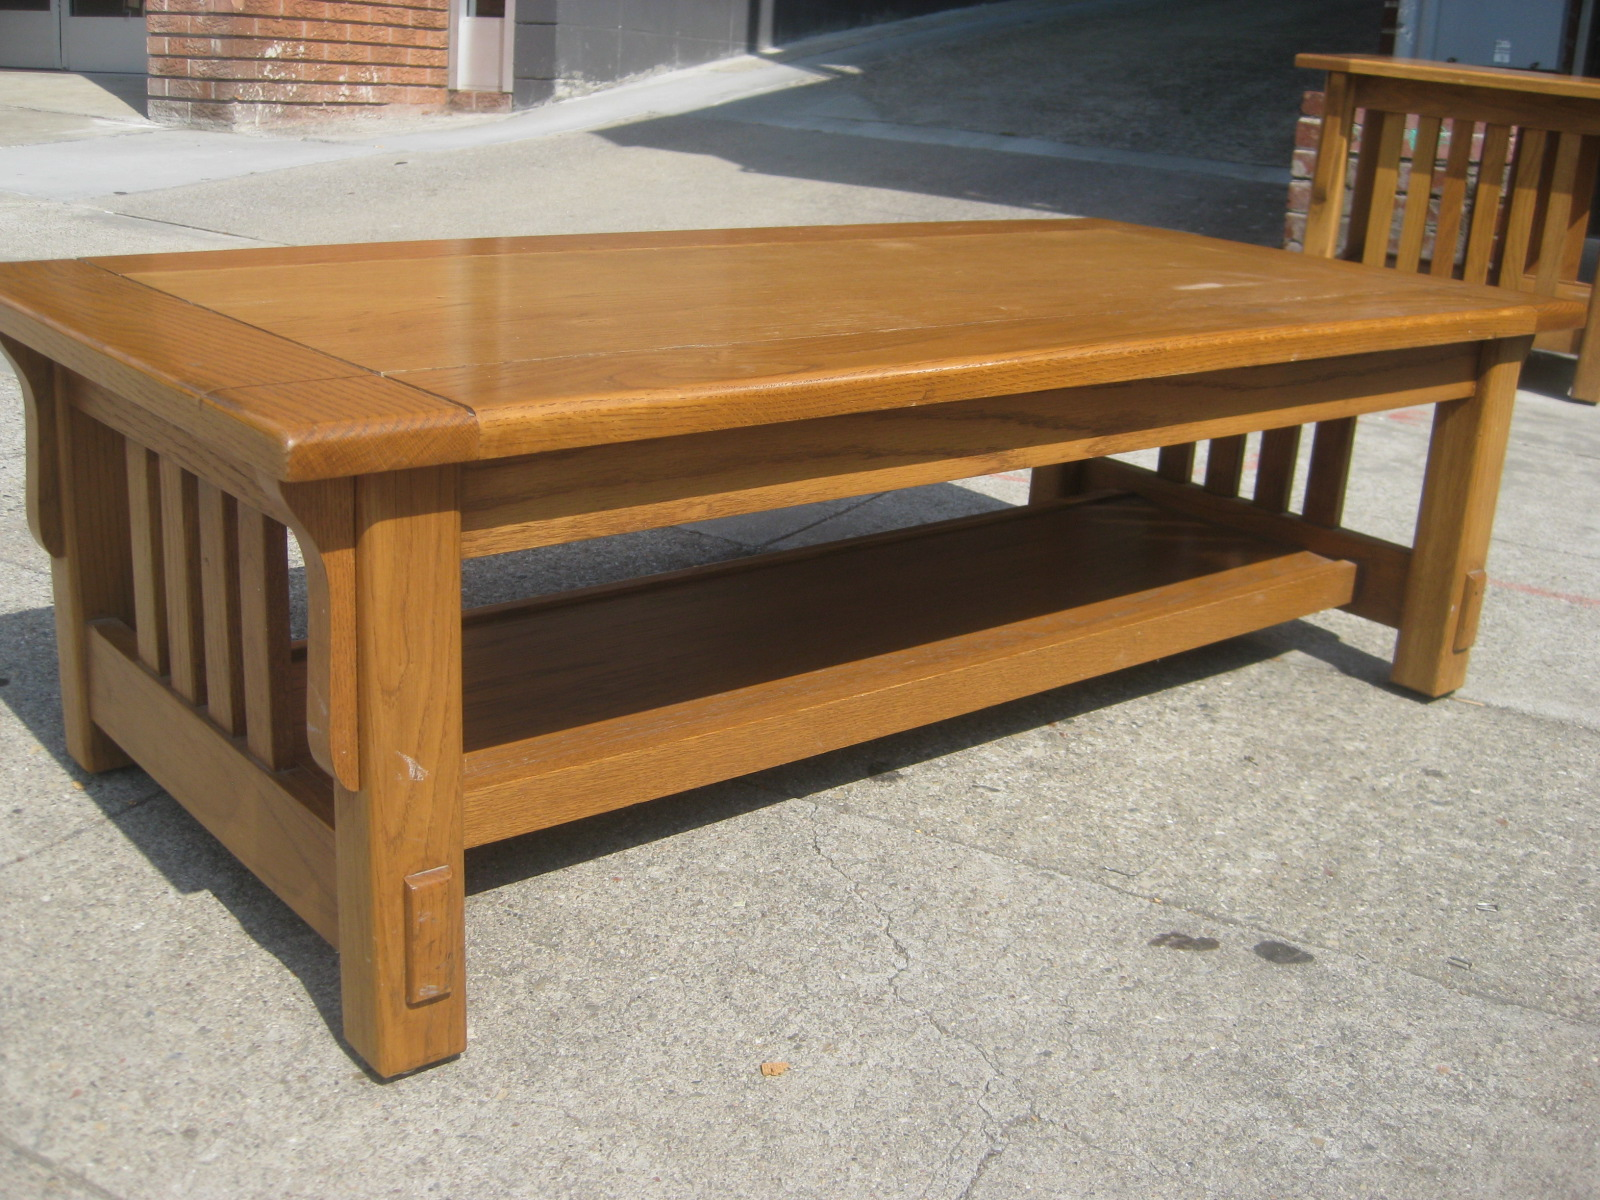 Uhuru furniture collectibles sold mission style coffee table sold mission style coffee table 75 geotapseo Choice Image